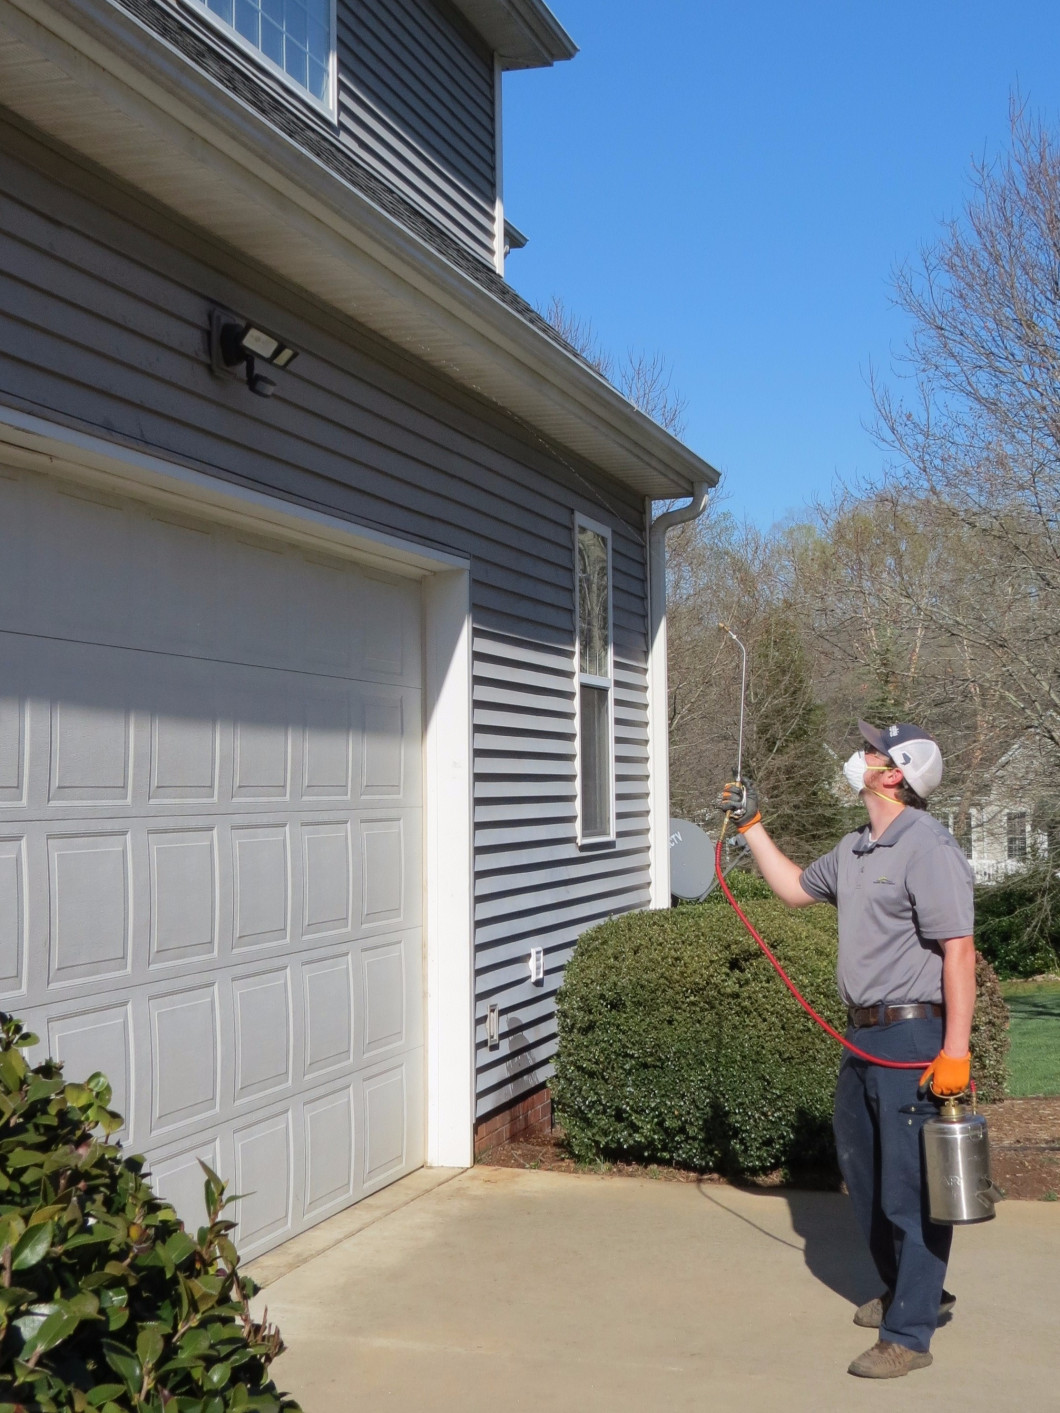 Find Pest Control Services in Easley and Greenville, SC